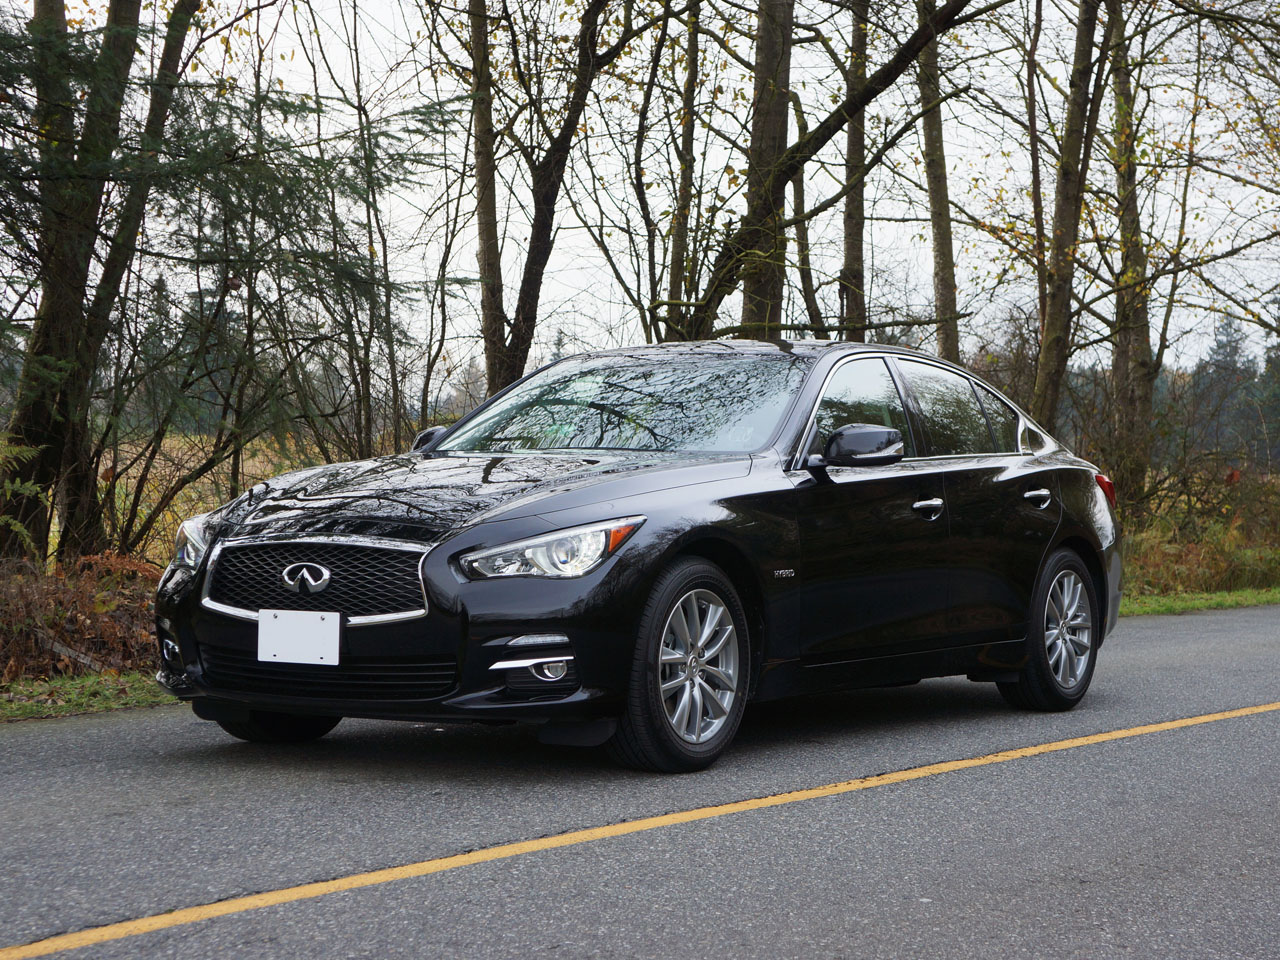 2014 infiniti q50 hybrid road test review carcostcanada. Black Bedroom Furniture Sets. Home Design Ideas